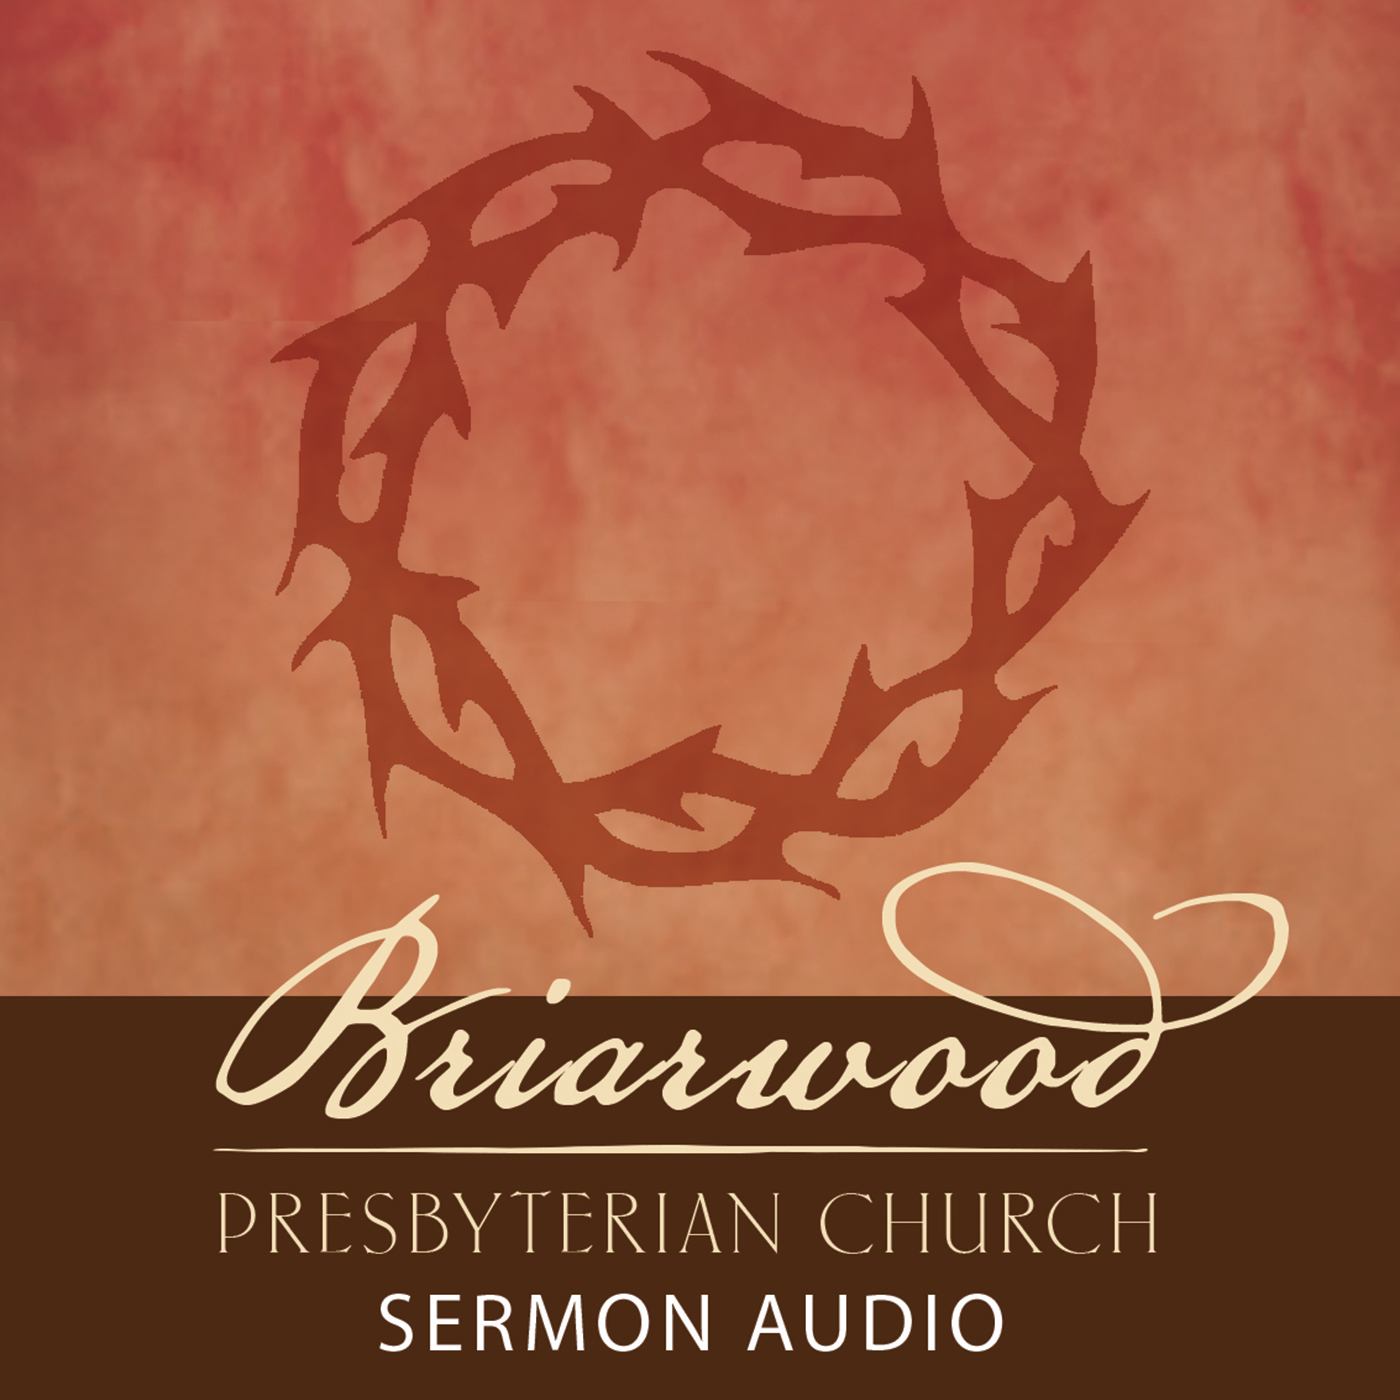 Briarwood Presbyterian Church - Dr. Harry L. Reeder III - Sermon Audio